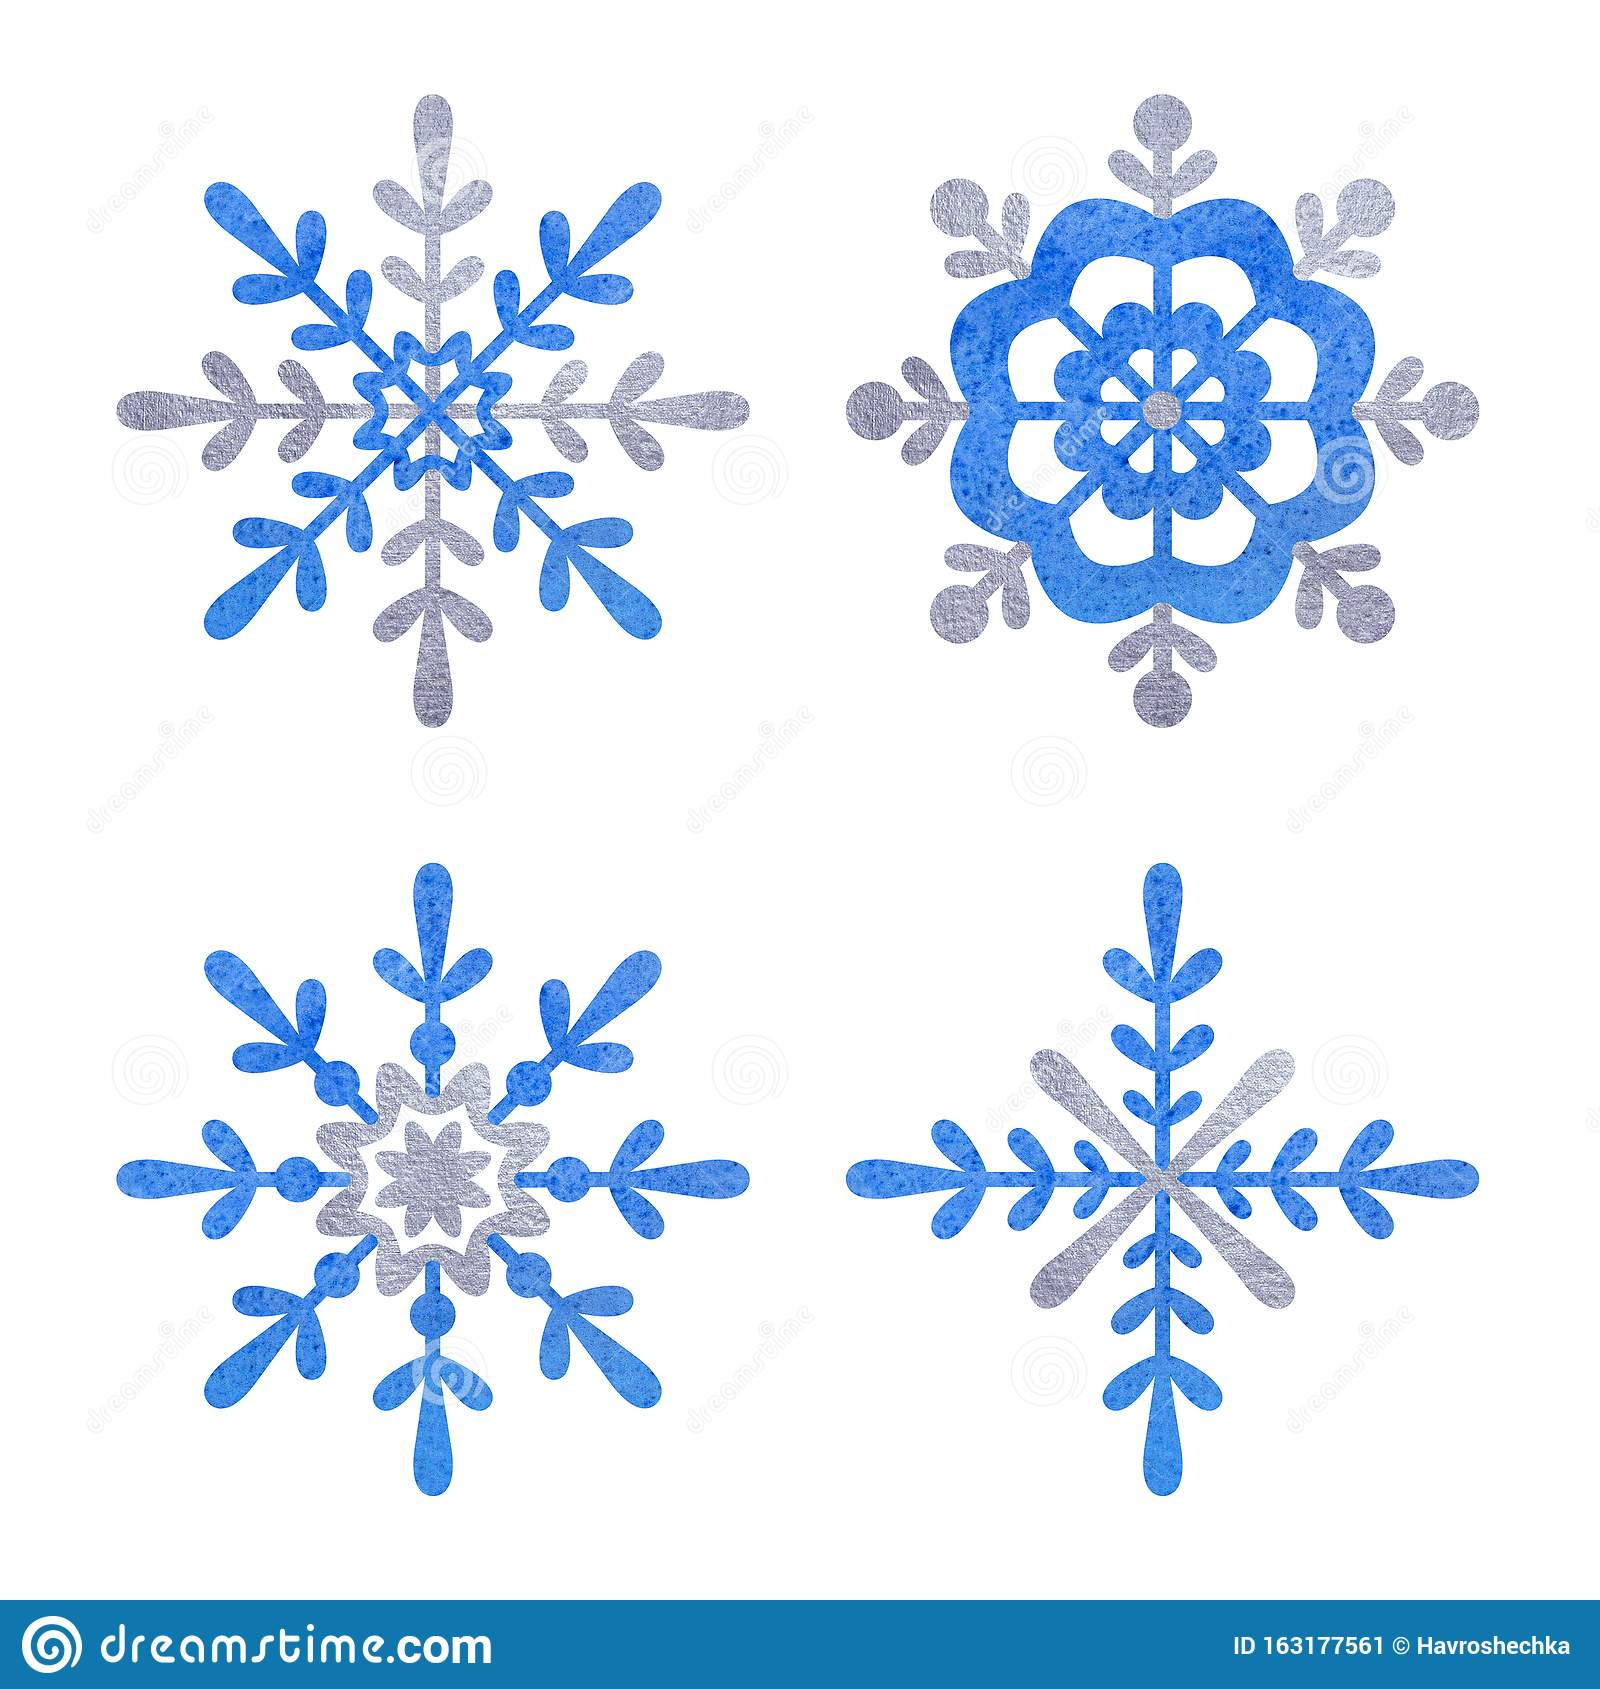 Blue and silver snowfloke watercolor hand painted clipart.